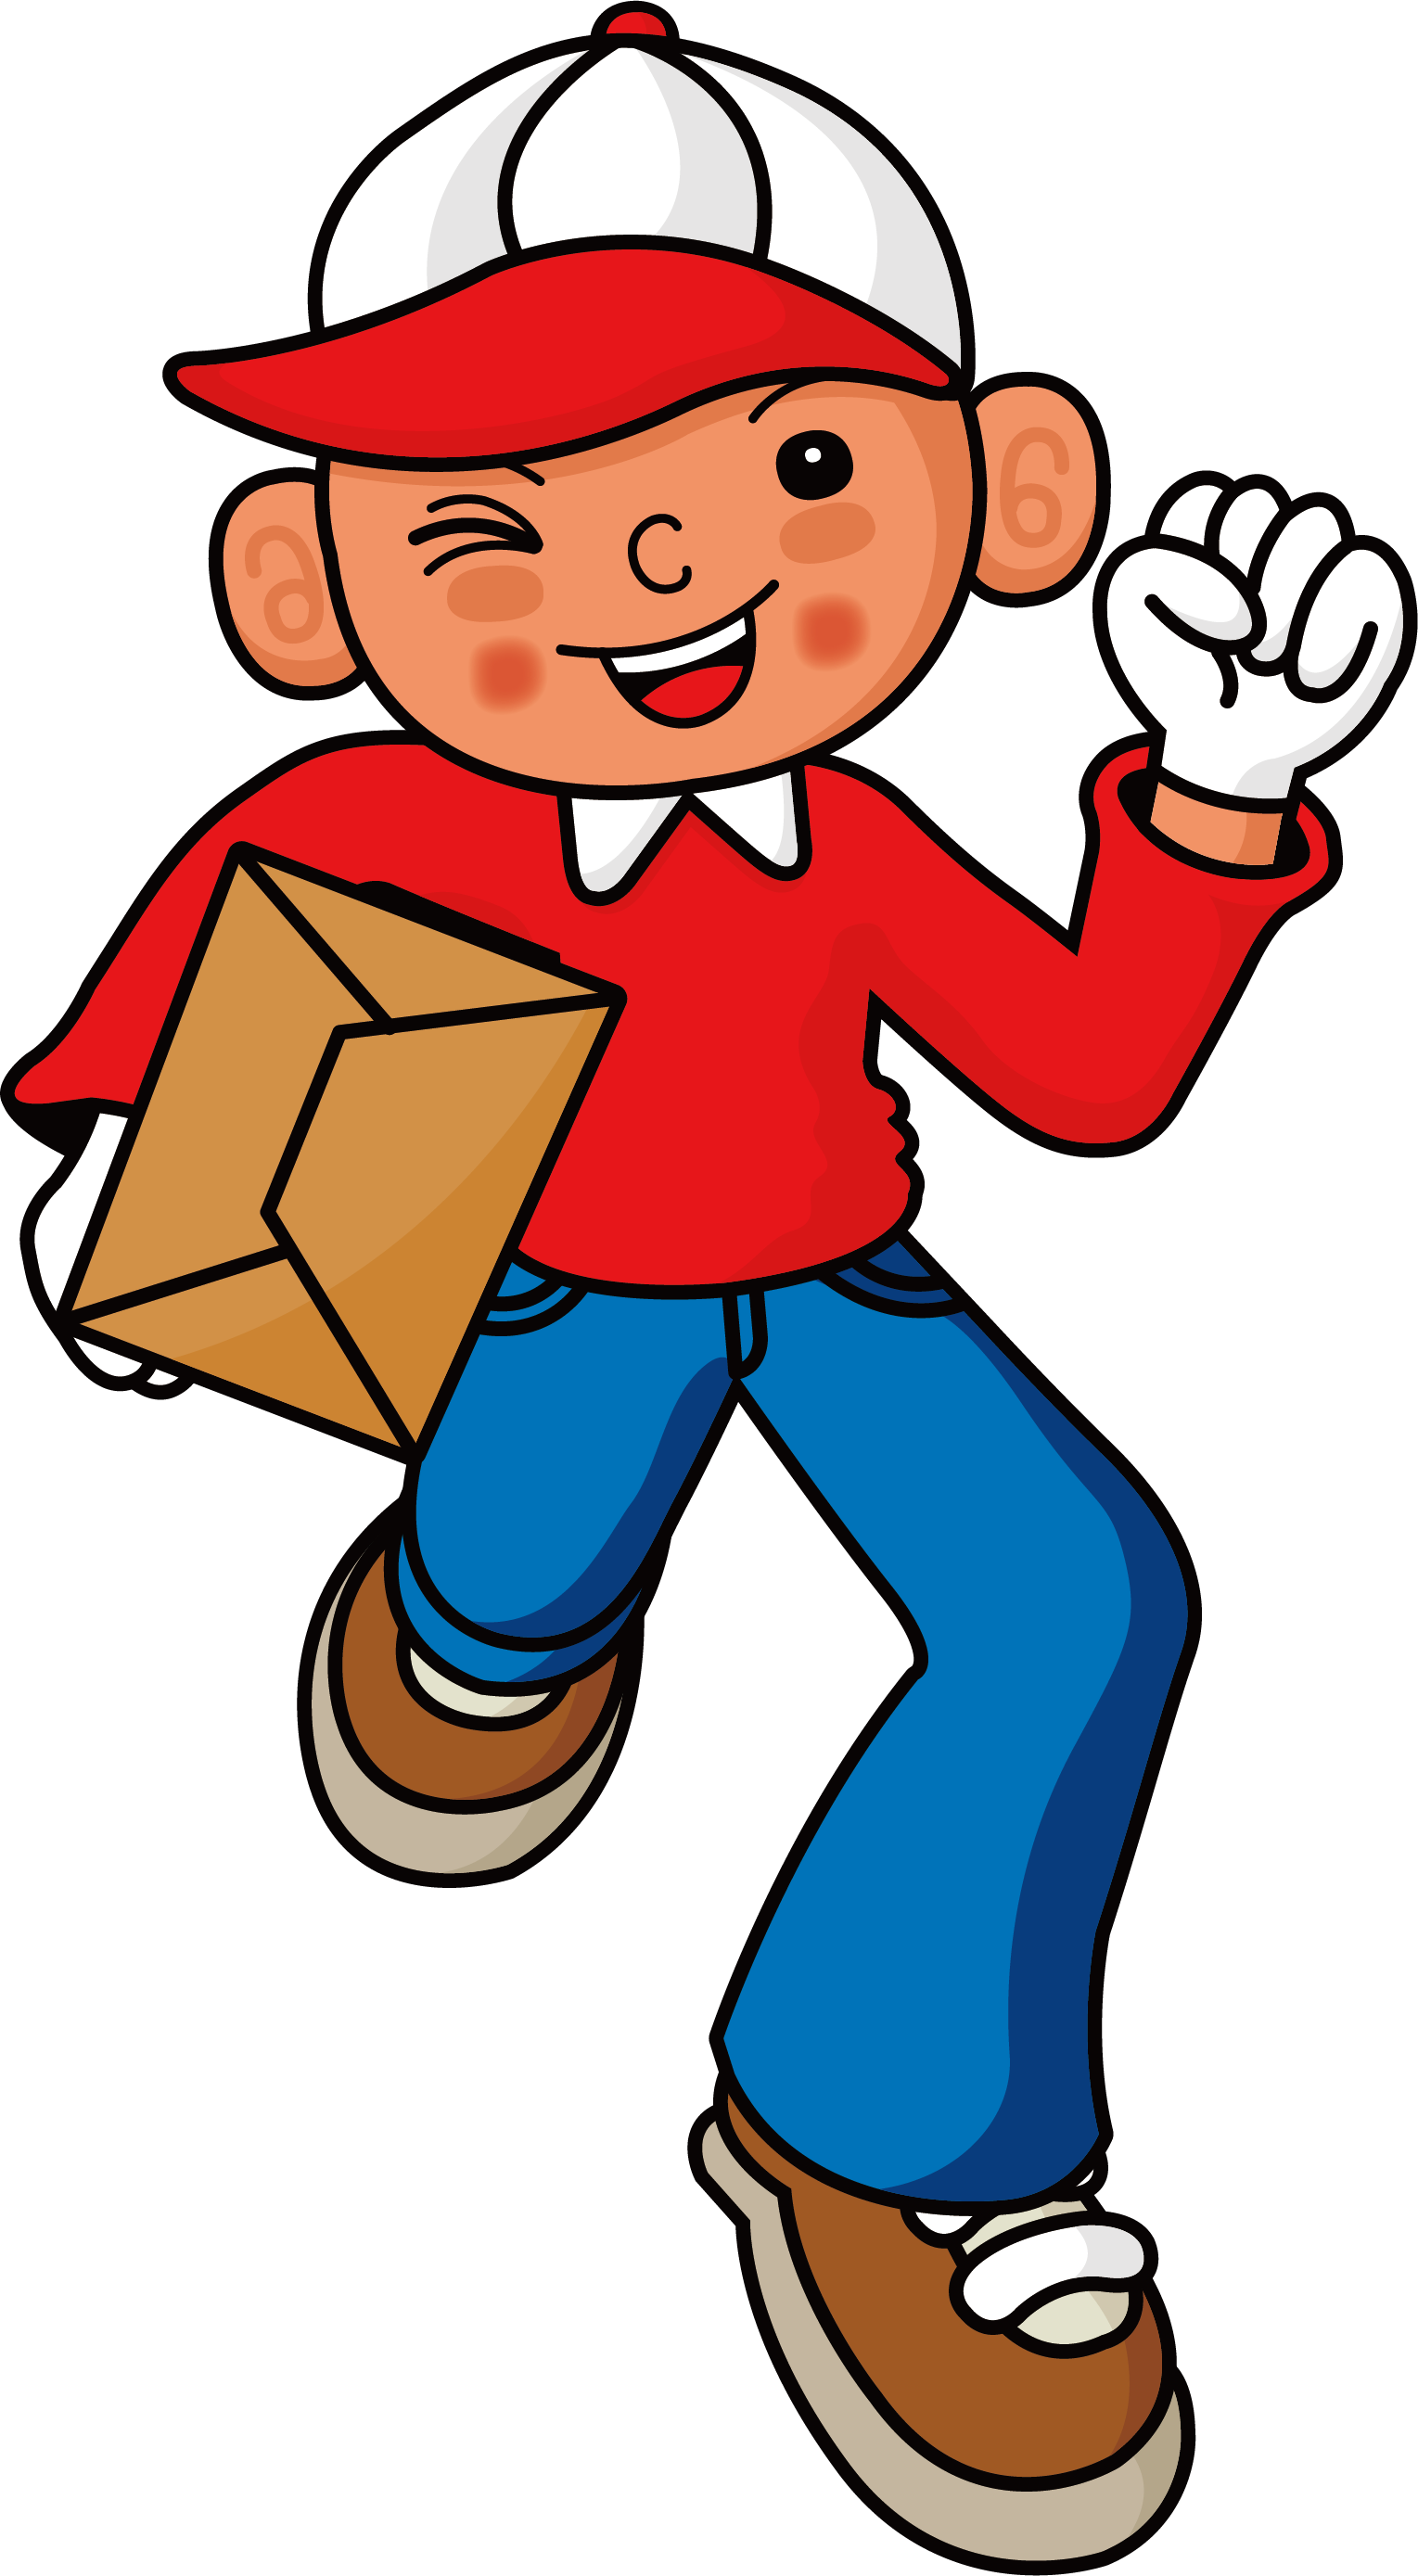 Delivery clipart kid. Courier boy clip arts